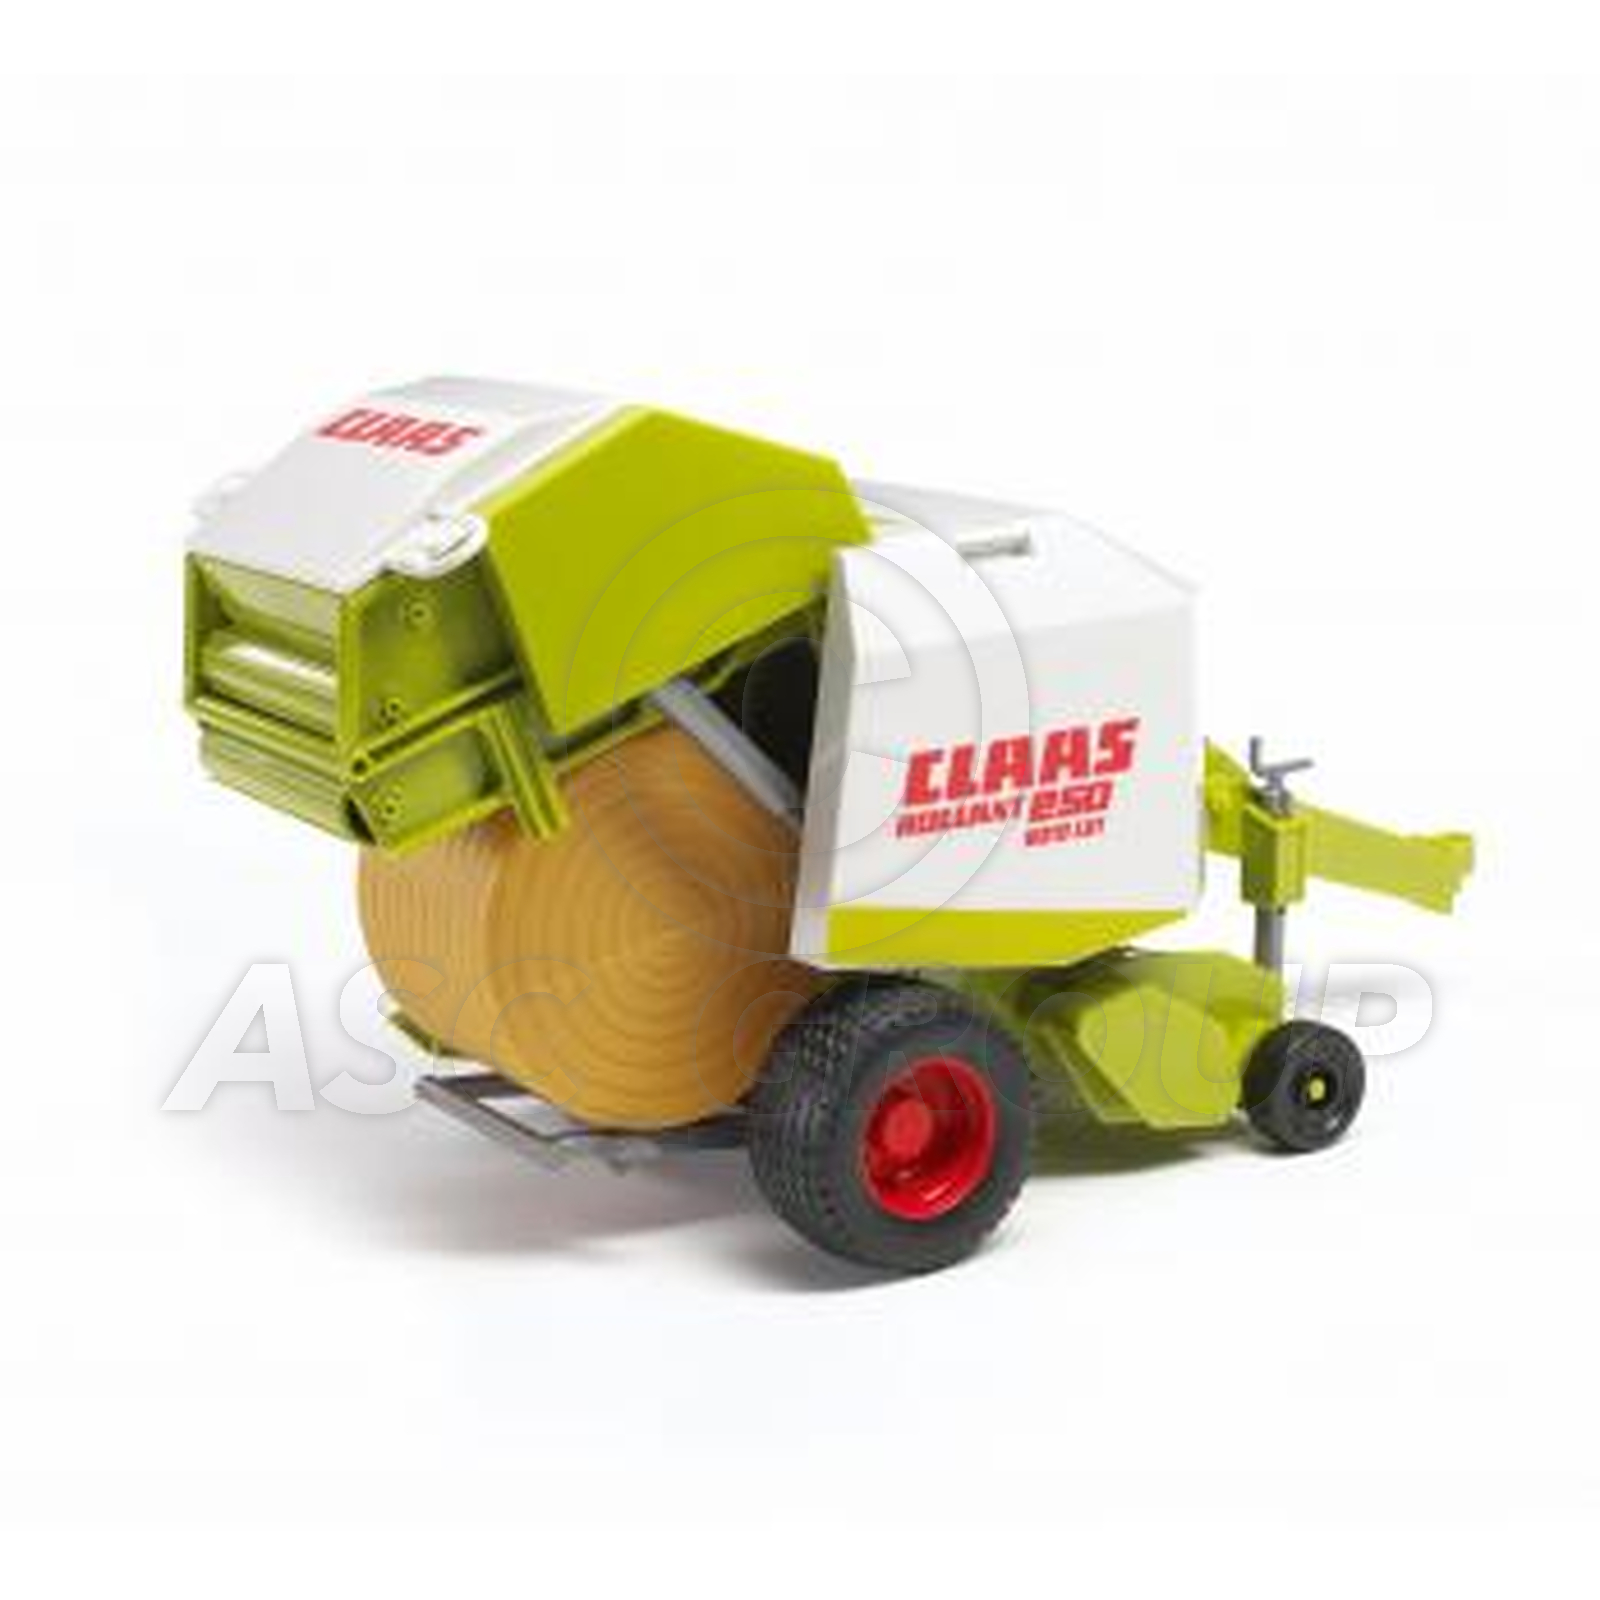 Bruder Claas Bruder Toys 02121 Pro Series Claas Round Bailer Rollant